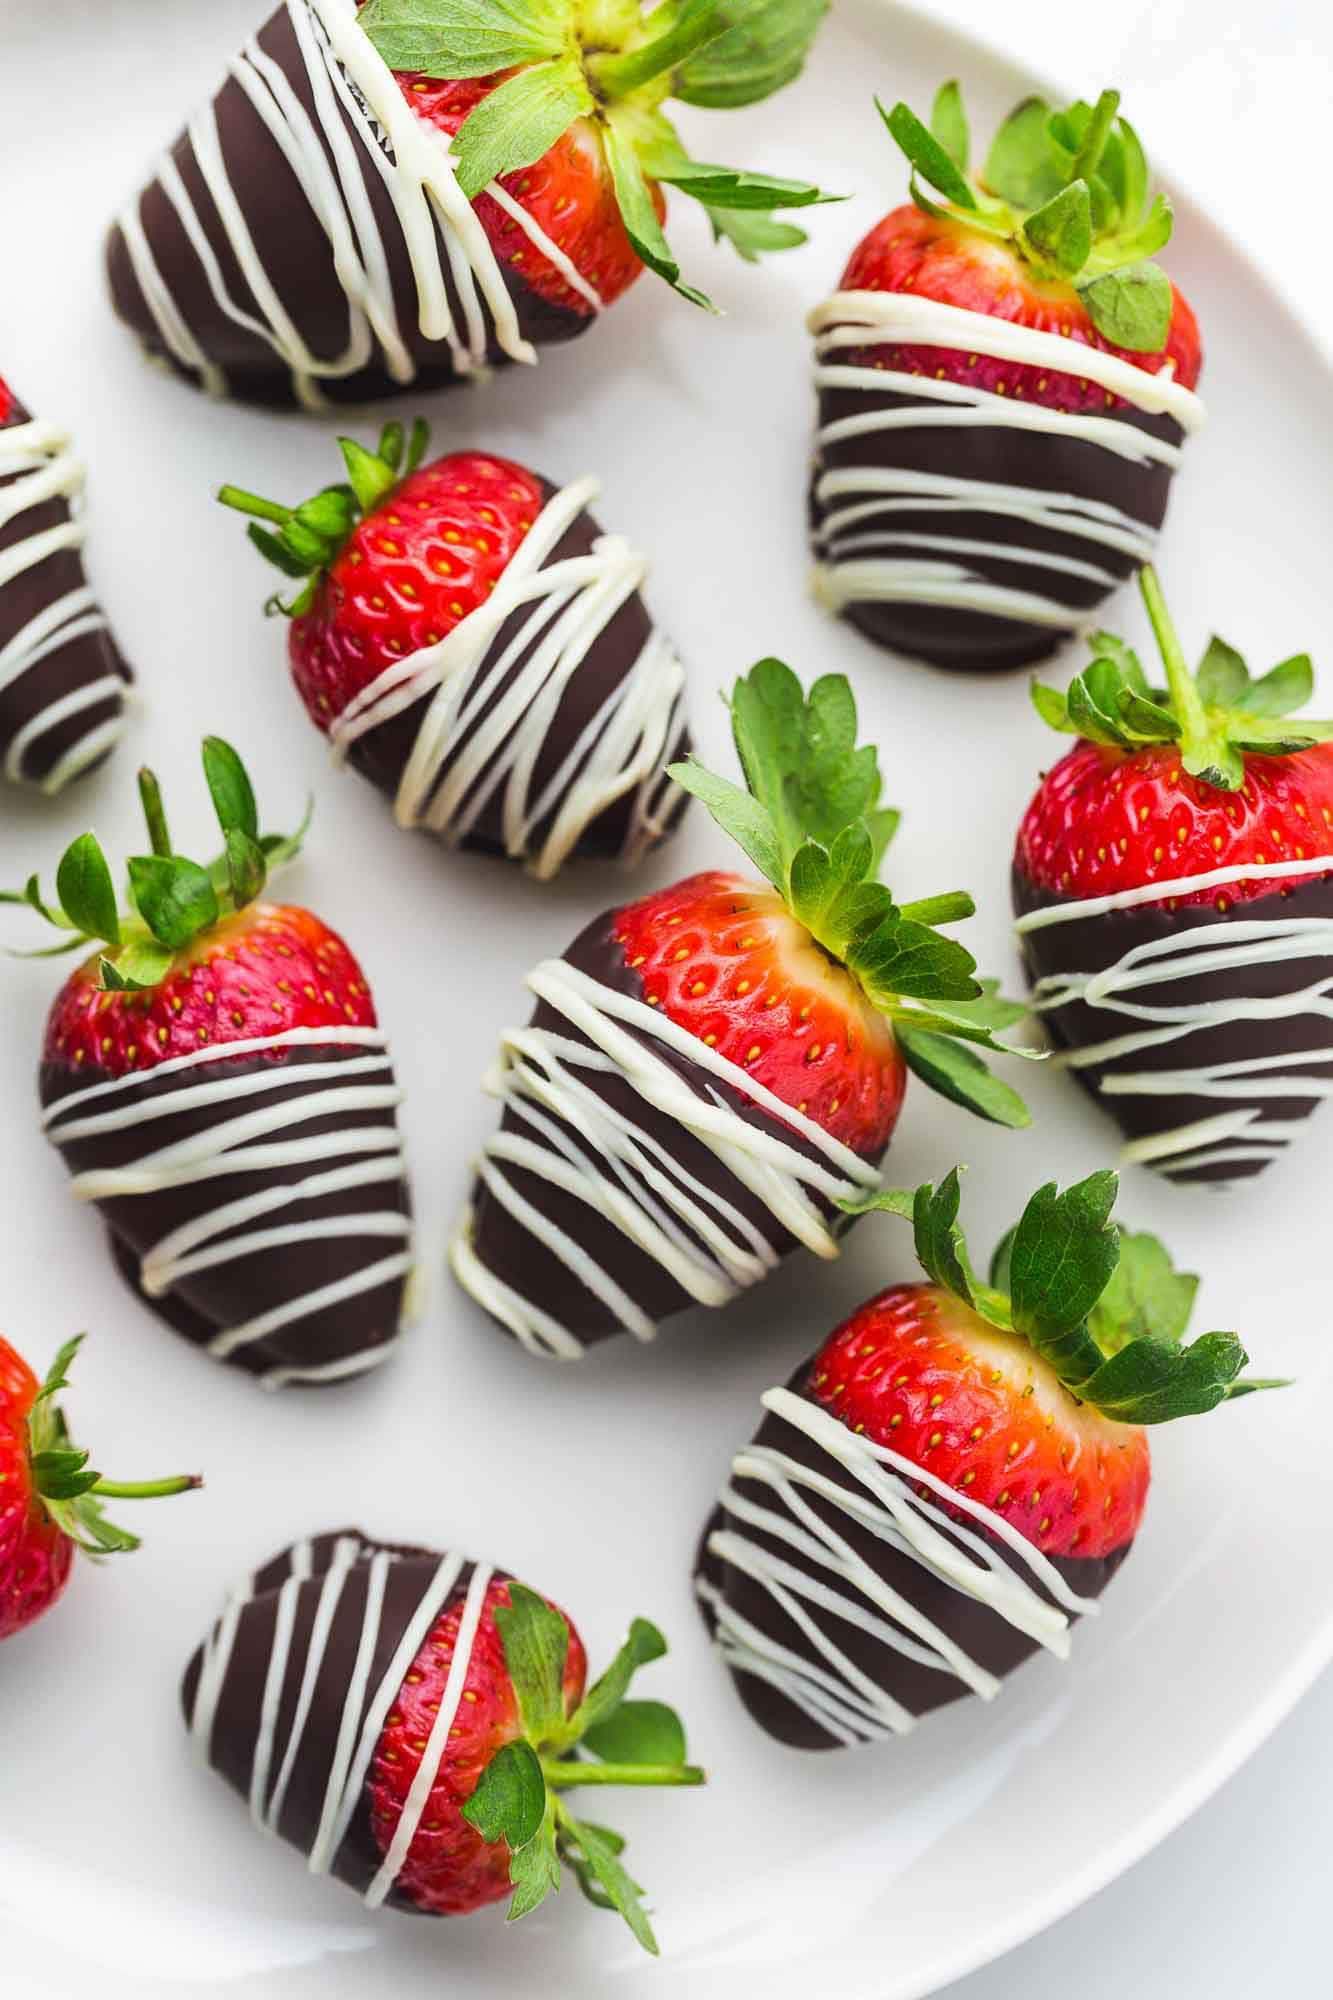 Overhead shot of chocolate covered strawberries with white chocolate drizzle, on a white plate